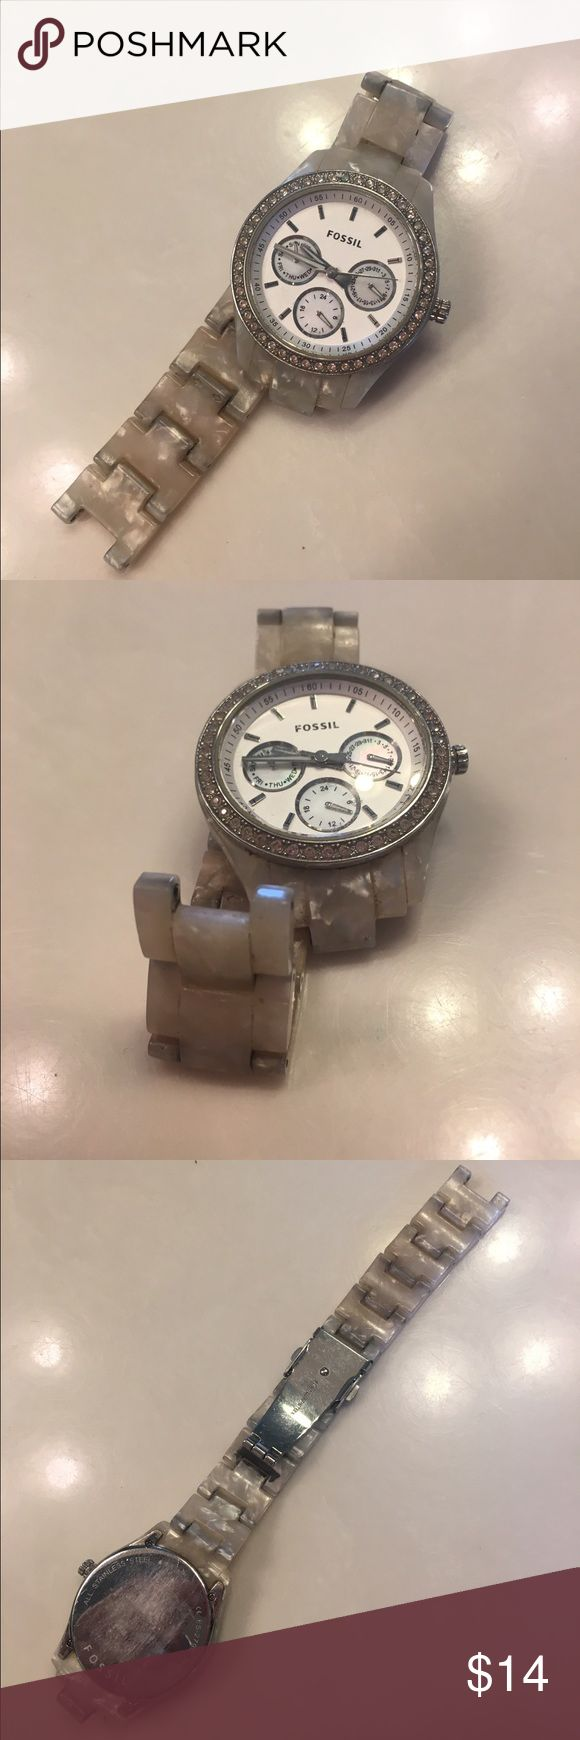 Fossil watch needs battery/needle Pearl off-white Fossil watch. One of the needles needs replaced as shown (I have had Dillards do this for me) and it needs a new battery Fossil Jewelry